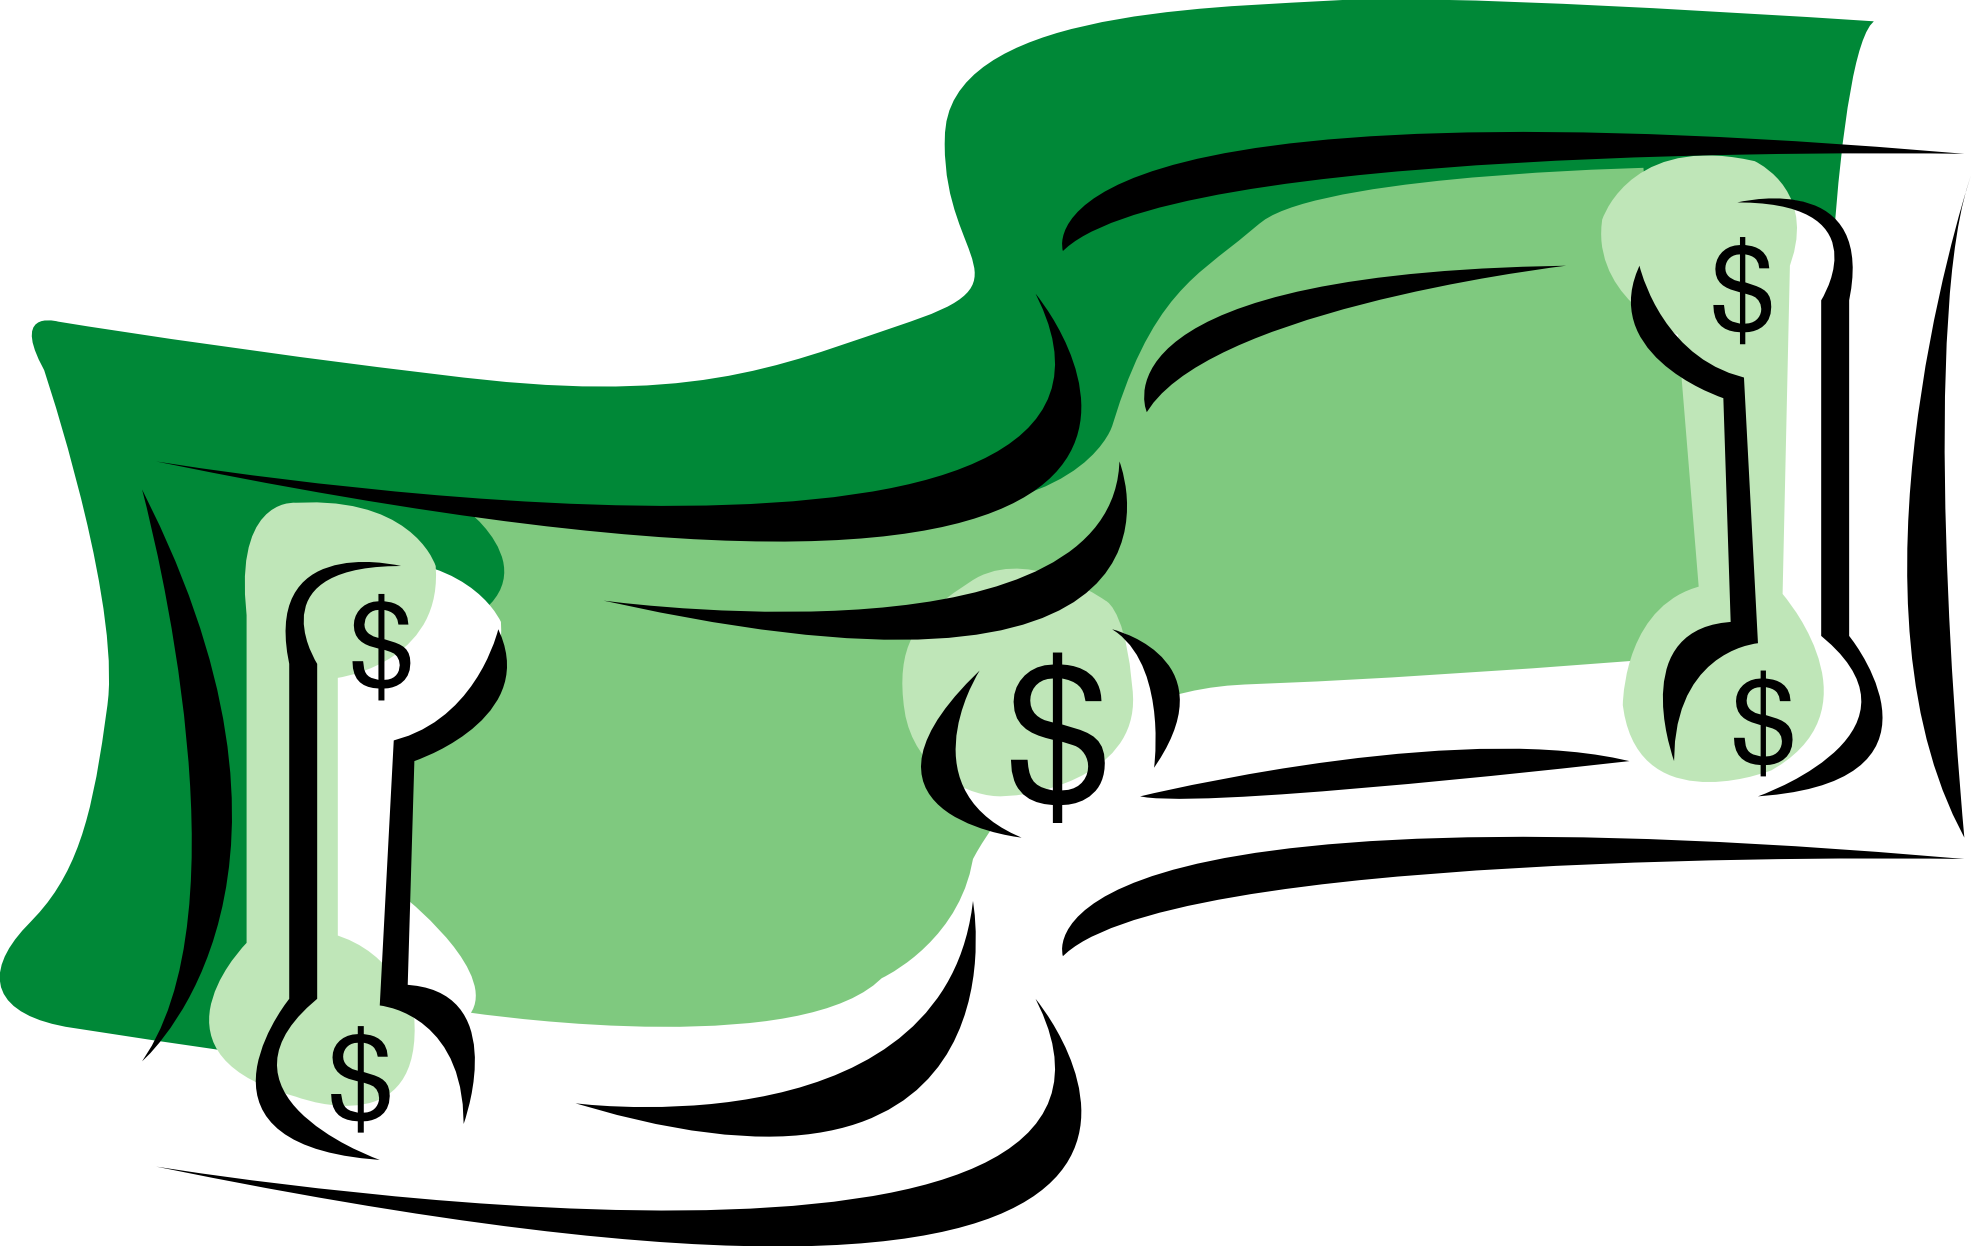 dollar bill clipart at getdrawings com free for personal use rh getdrawings com